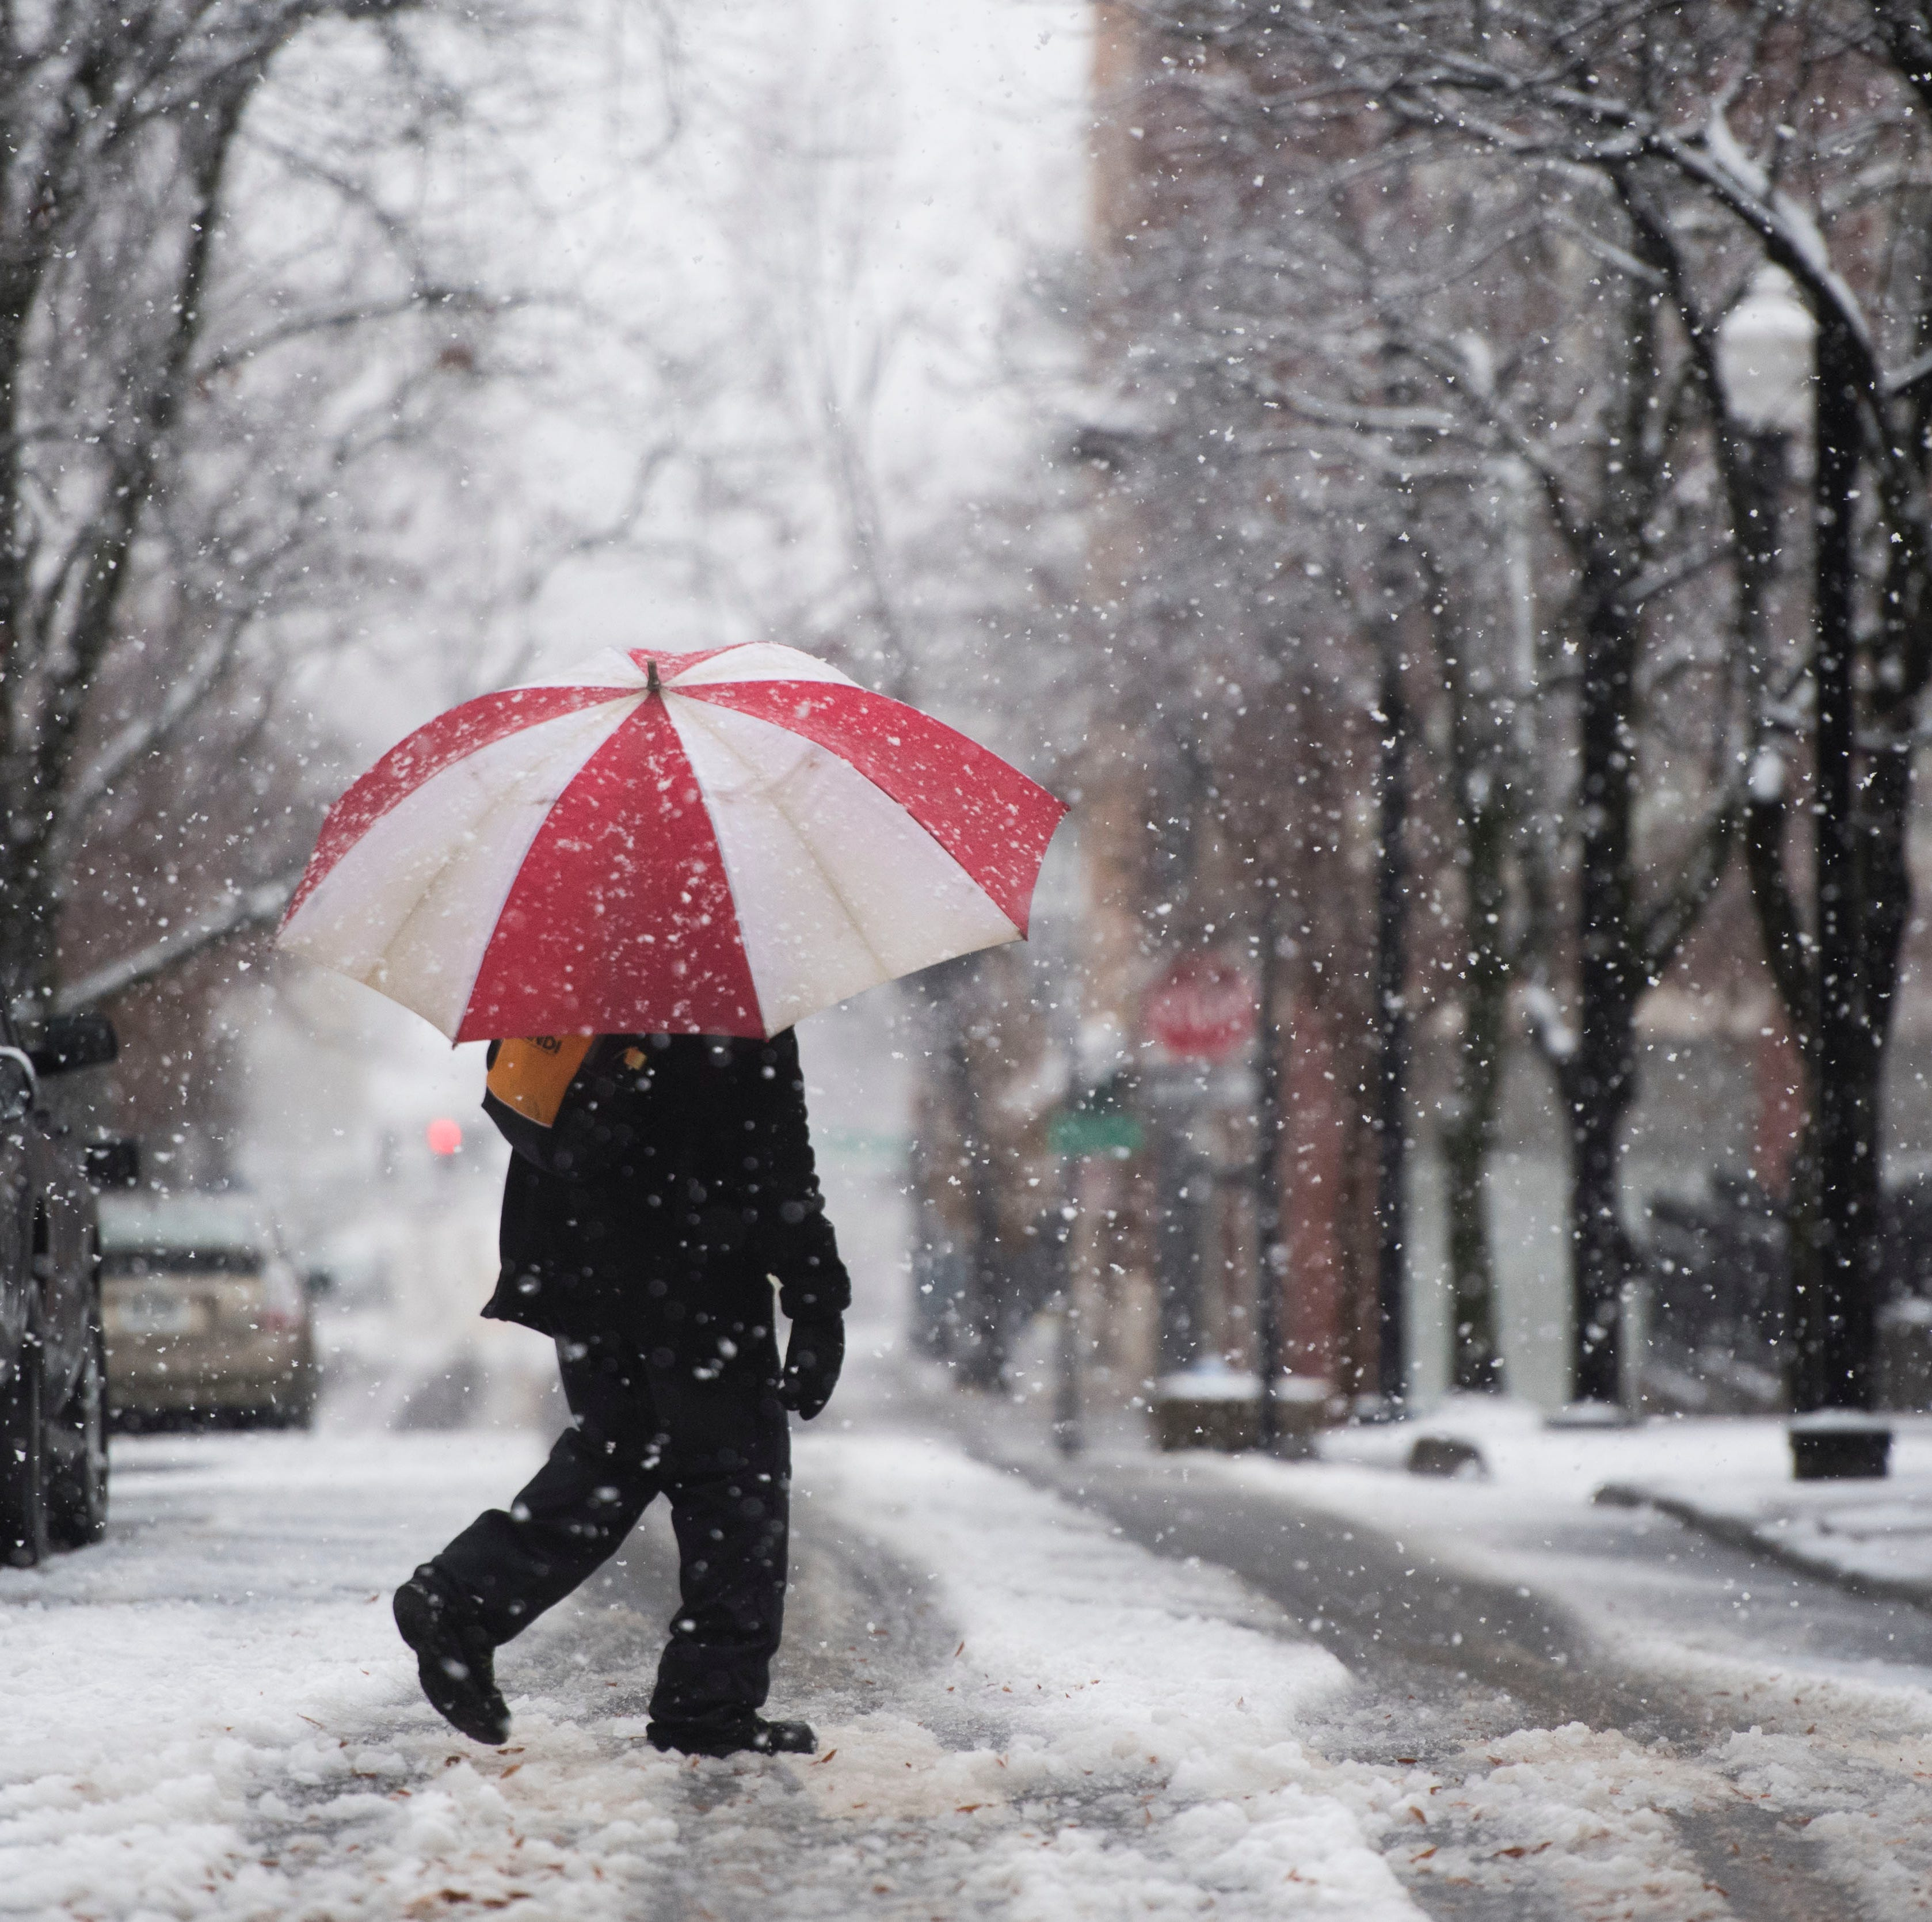 Knoxville's first snow of the season could hang around through Monday